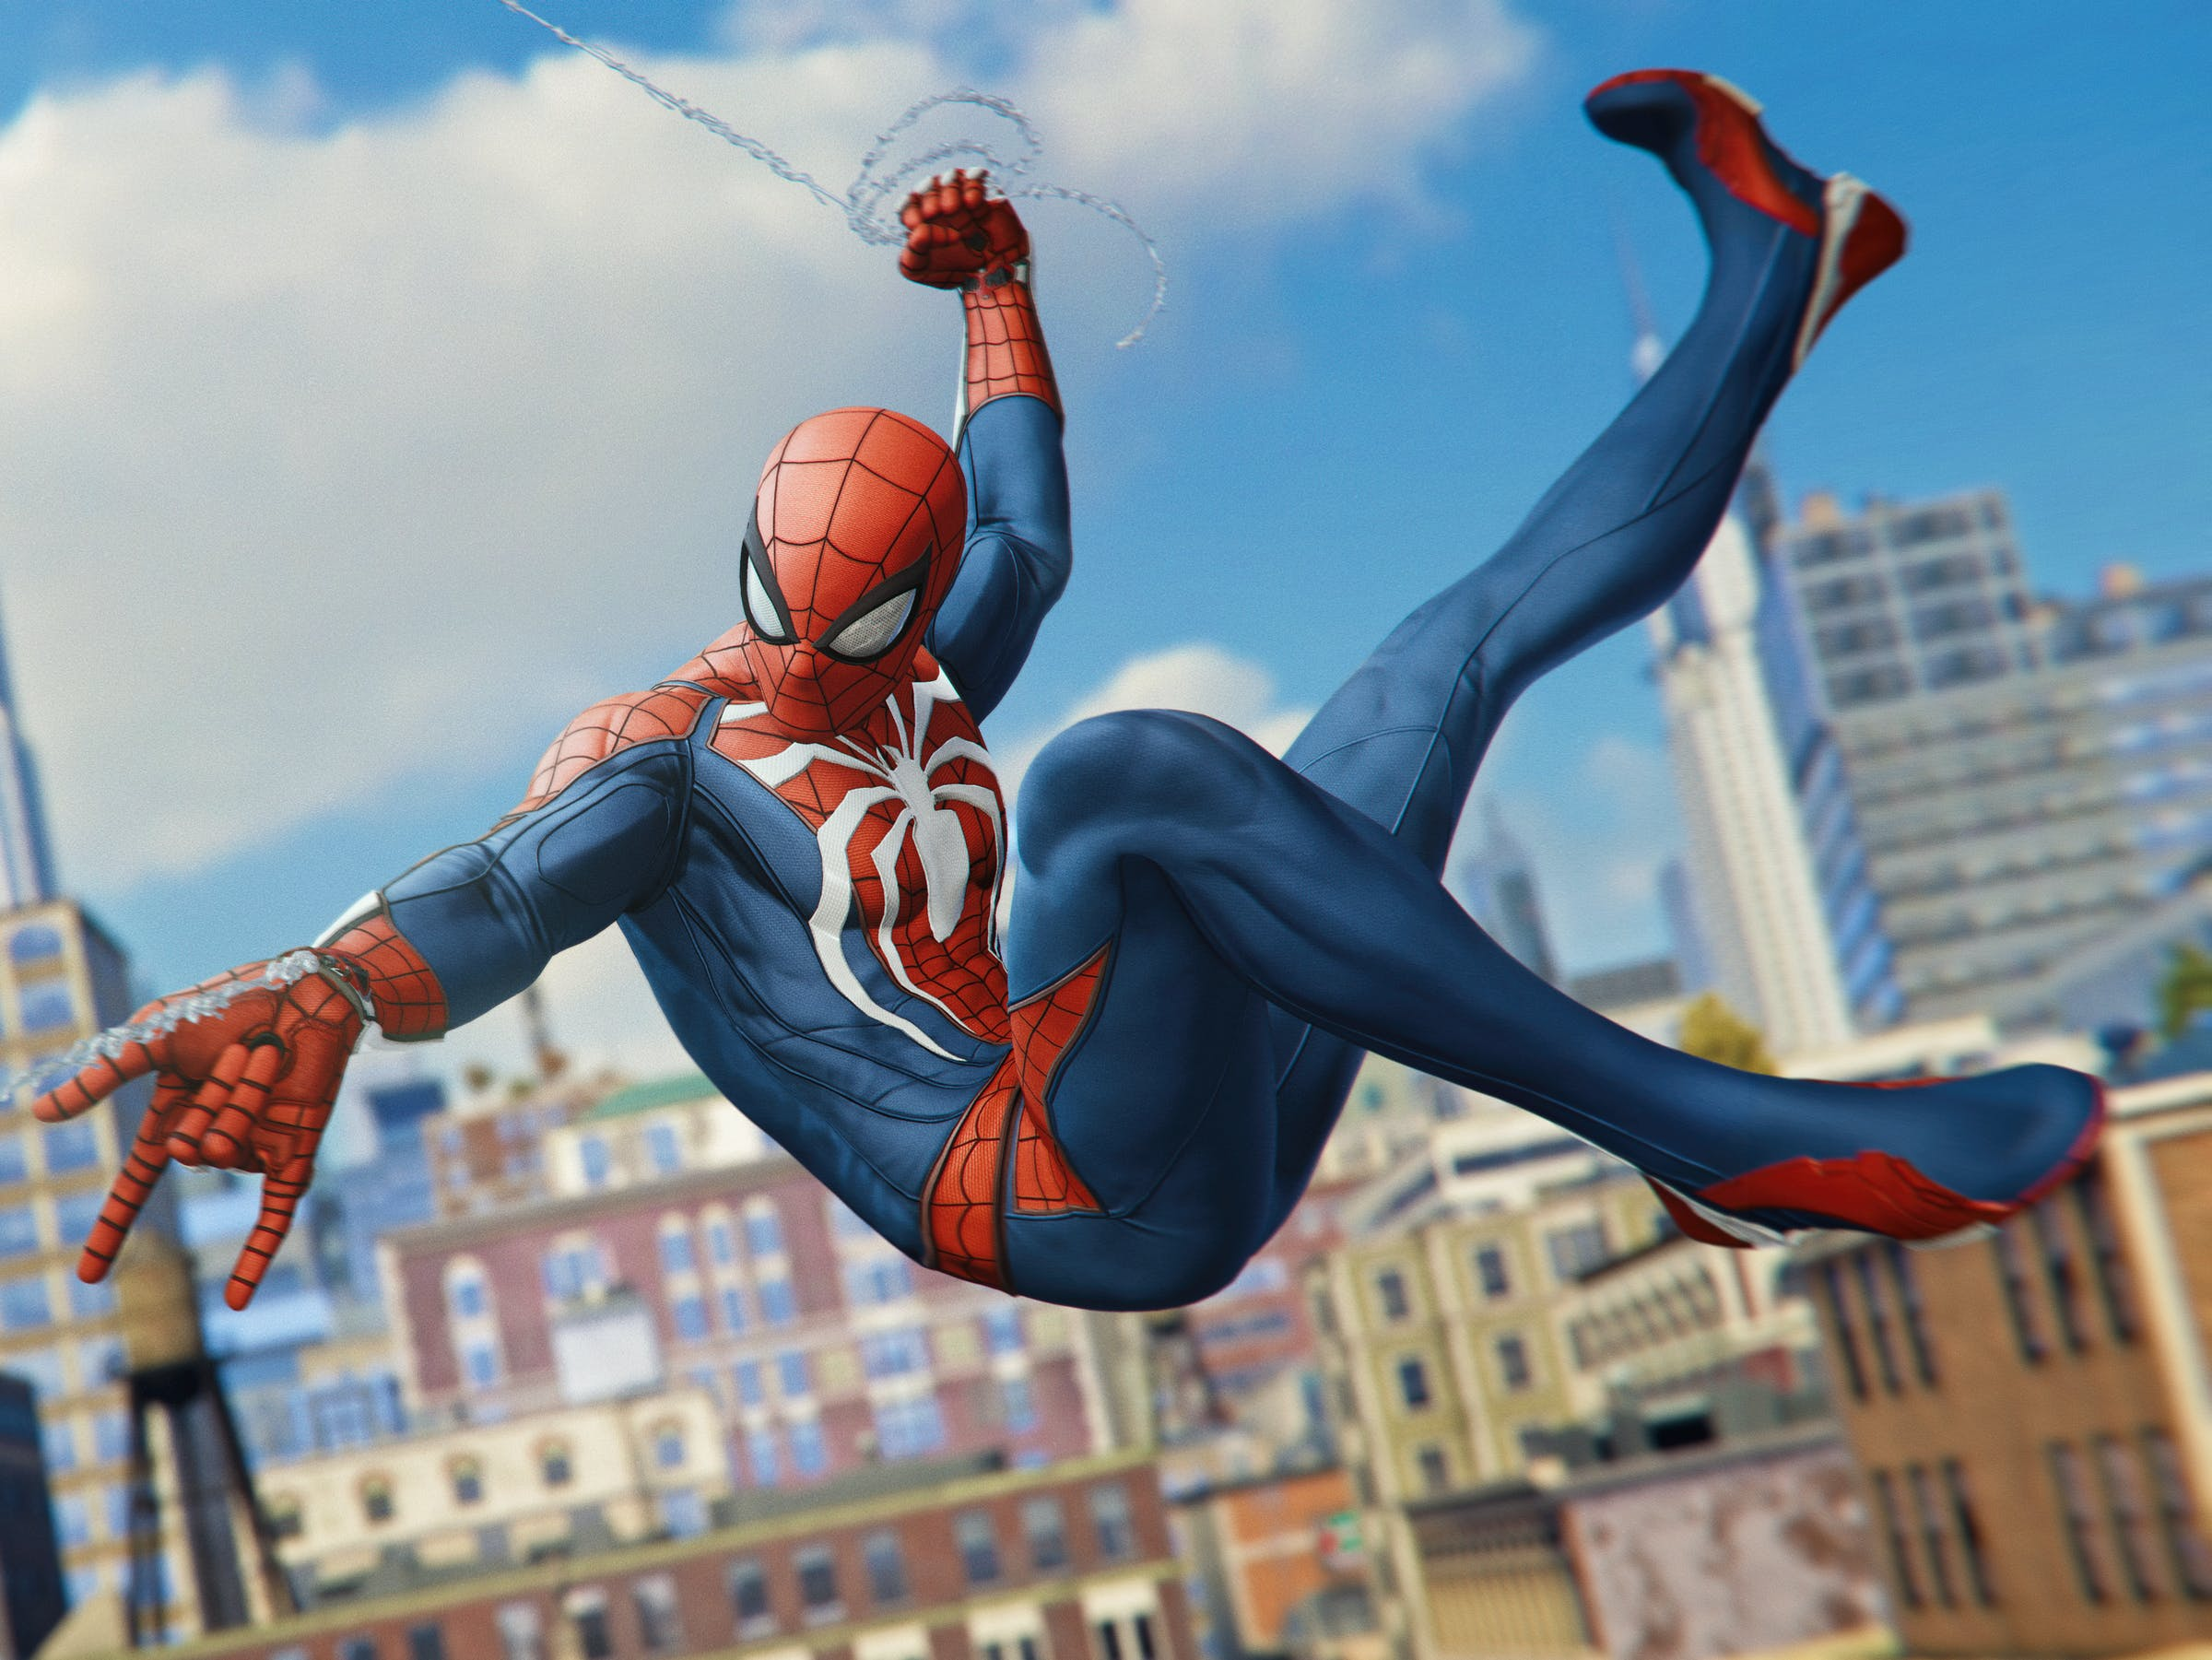 Spider-Man' PS4 Suits: Definitive Guide to the Origin of Every